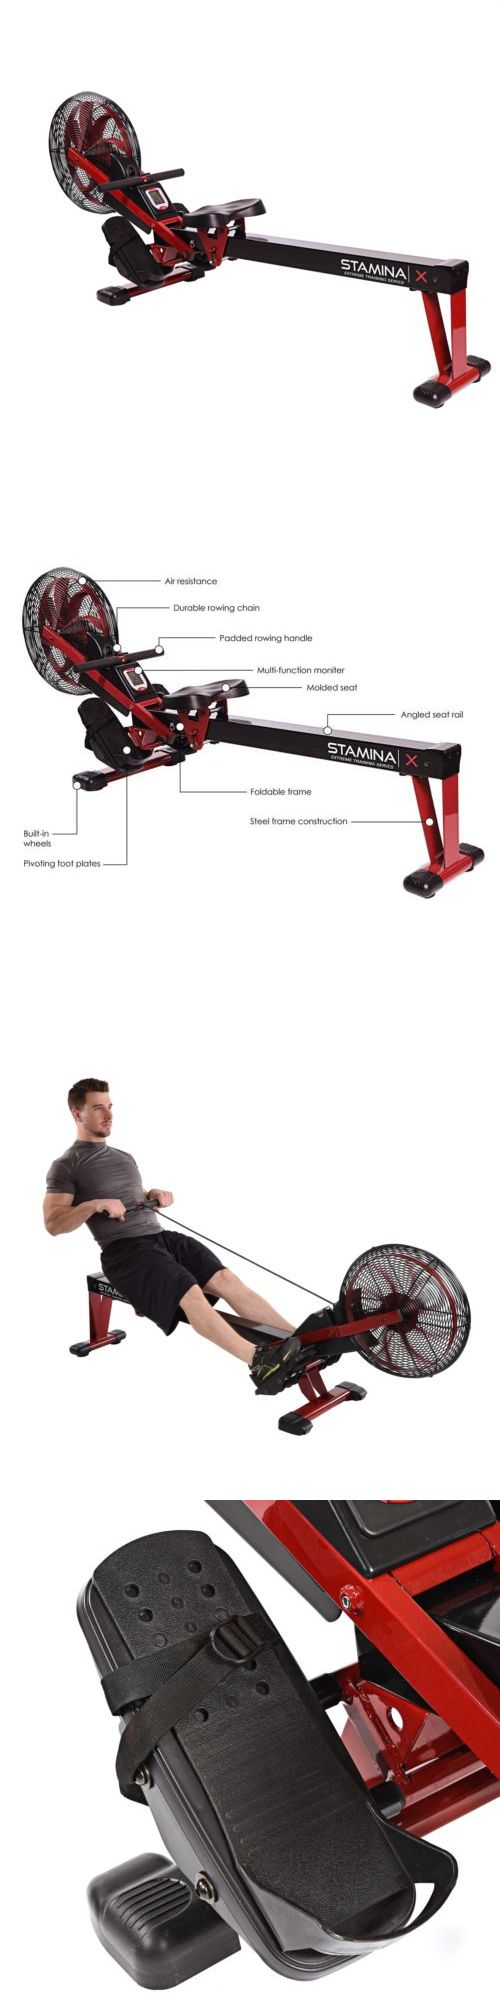 Rowing Machines 28060: Stamina Rowing Machine -> BUY IT NOW ONLY: $481.04 on eBay!